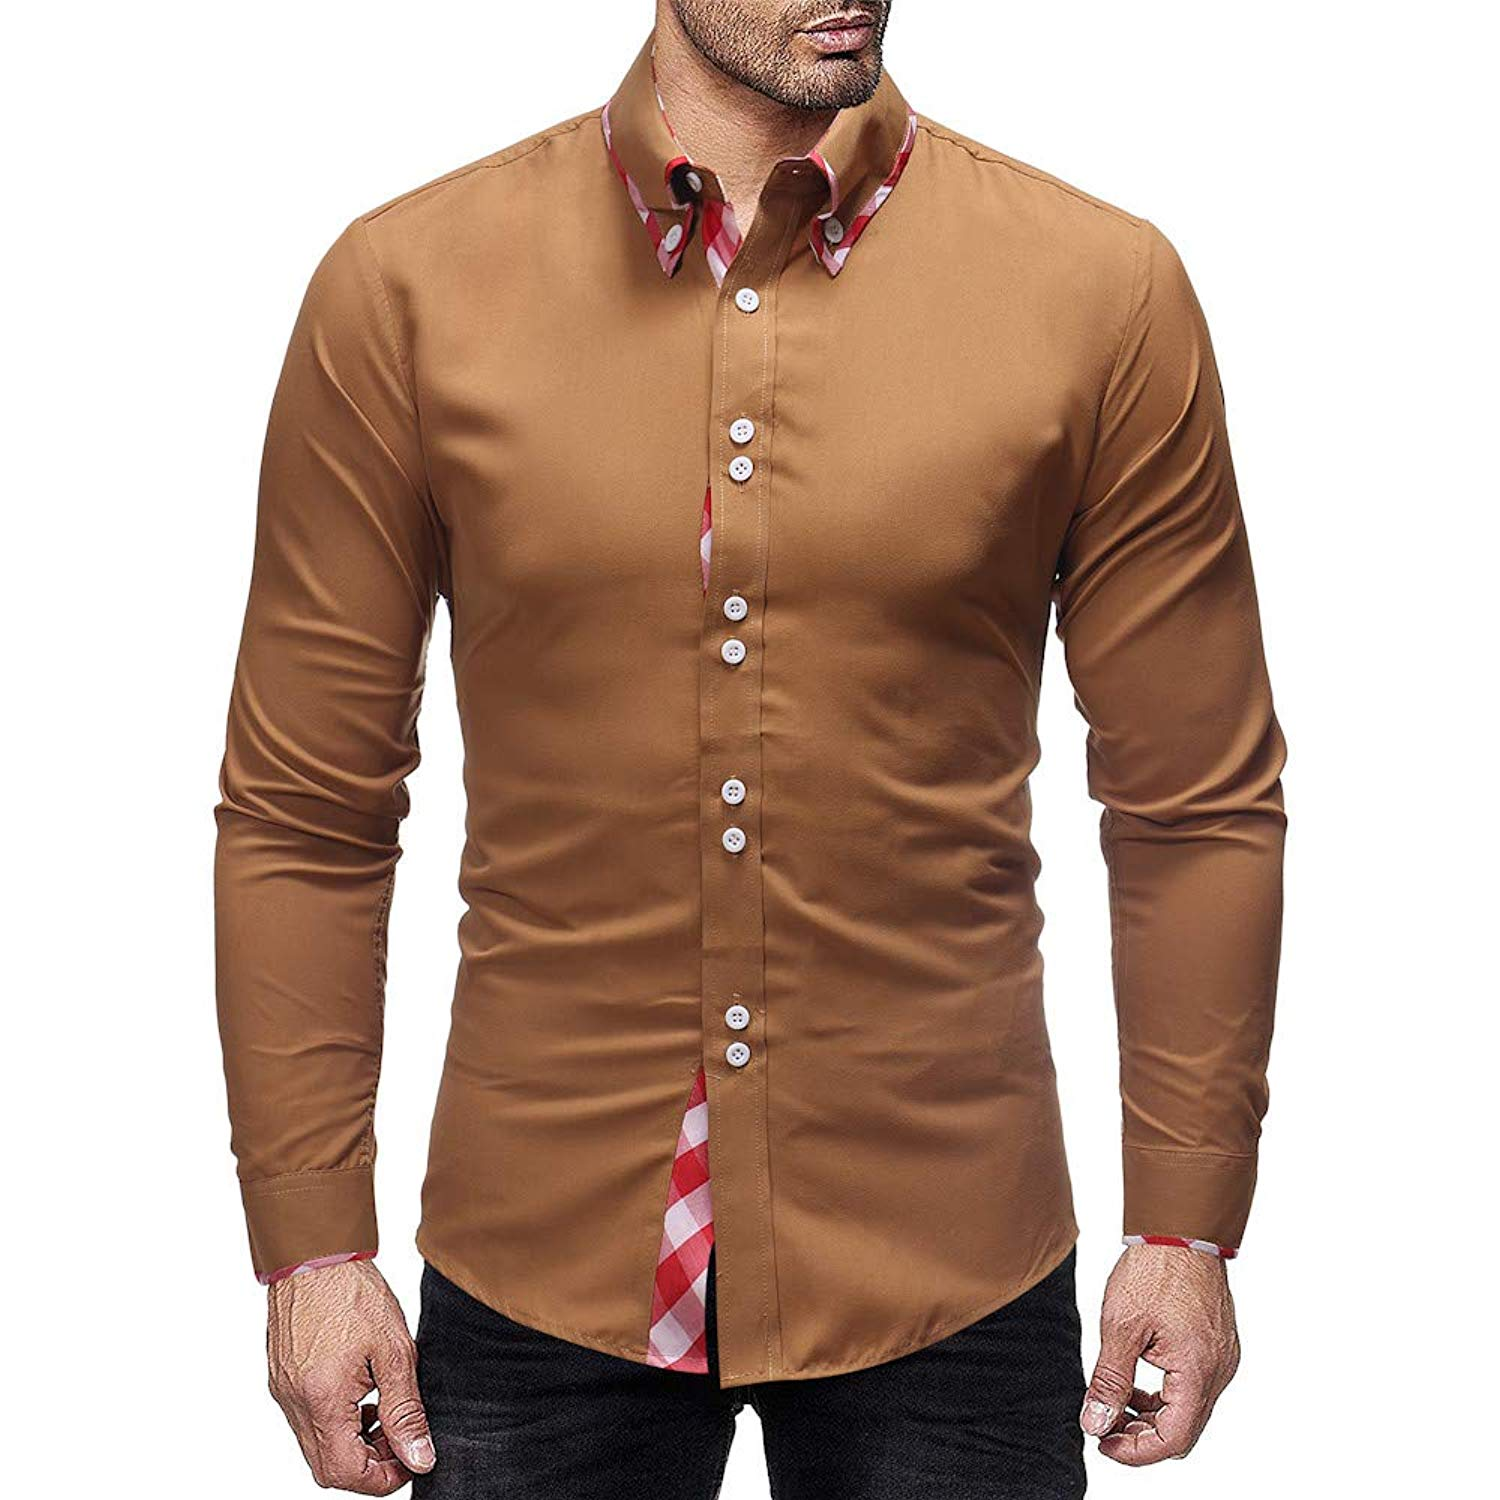 cd14e46ef Get Quotations · Howstar Men s Long Sleeve Blouse Fashion Plaid Shirts  Autumn Winter Slim Fit Tee Tops Patchwork T